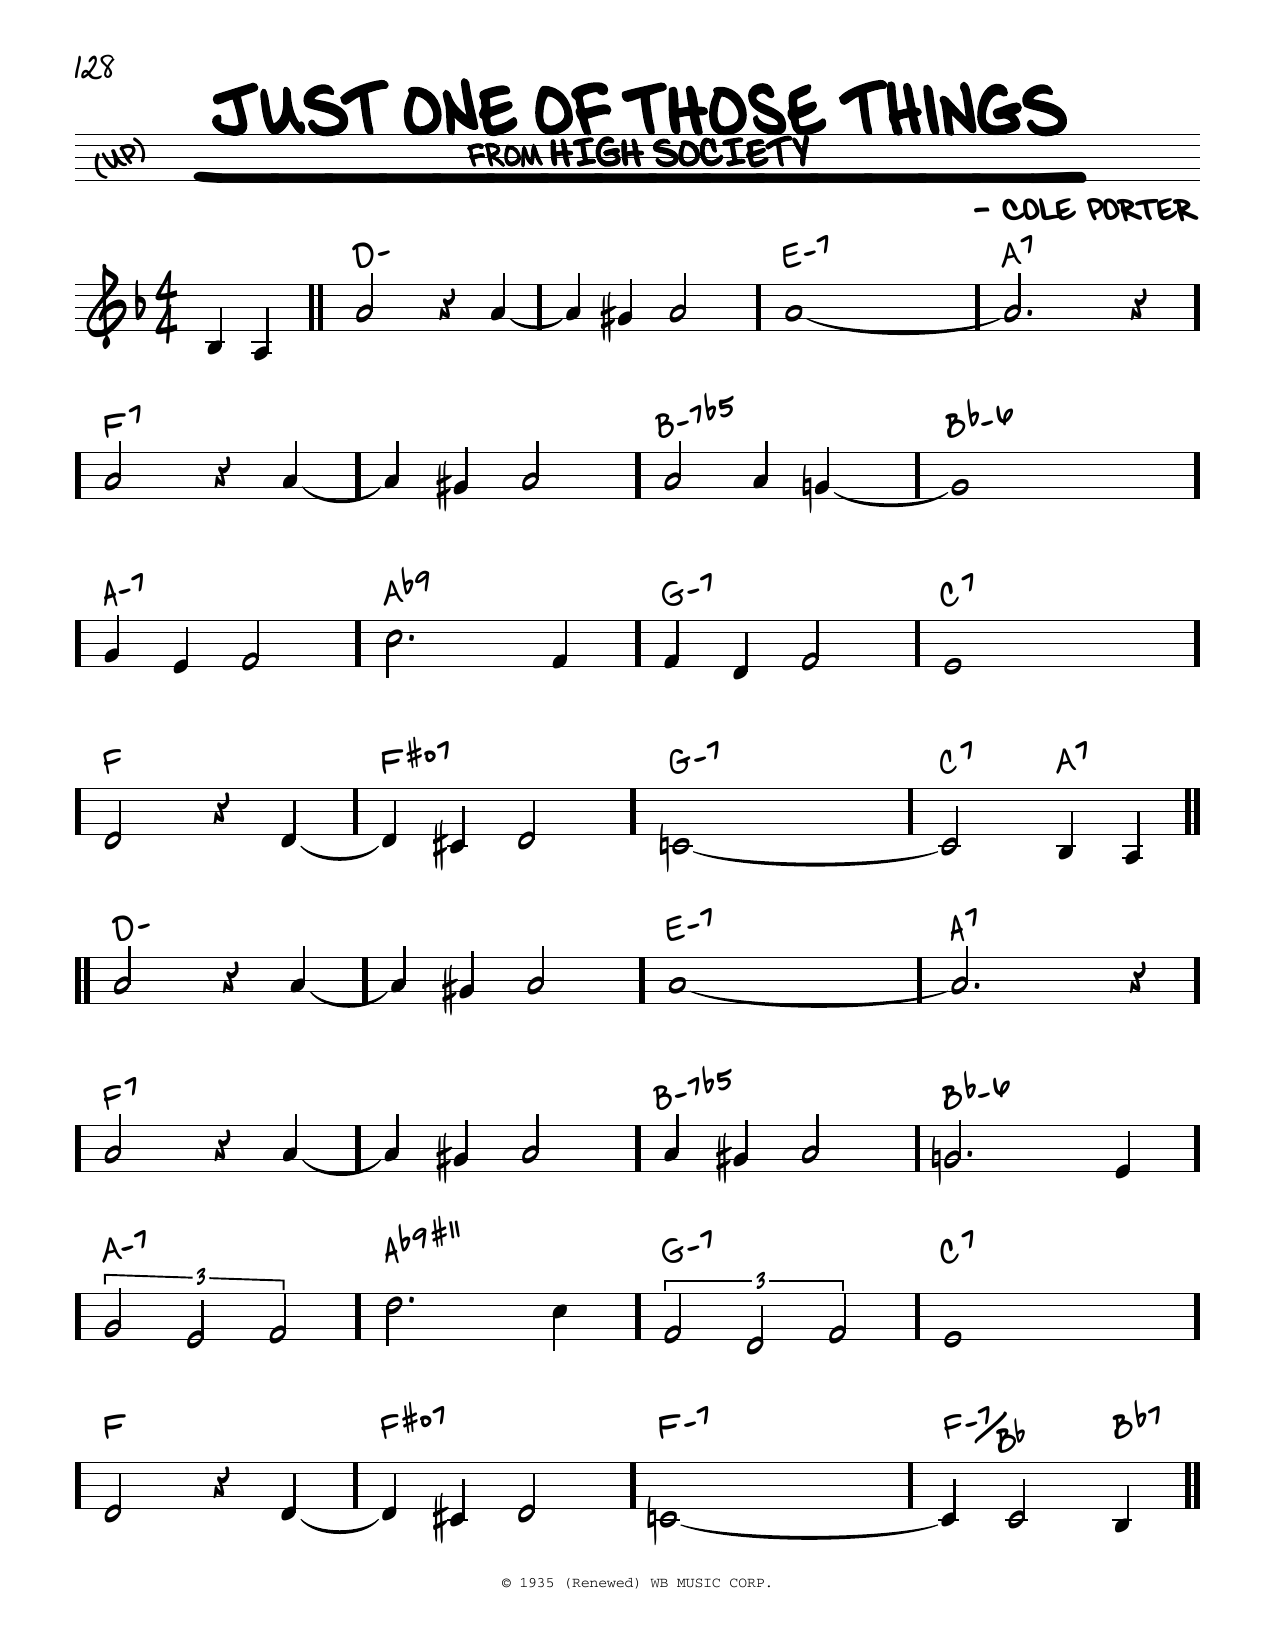 Just One Of Those Things Sheet Music